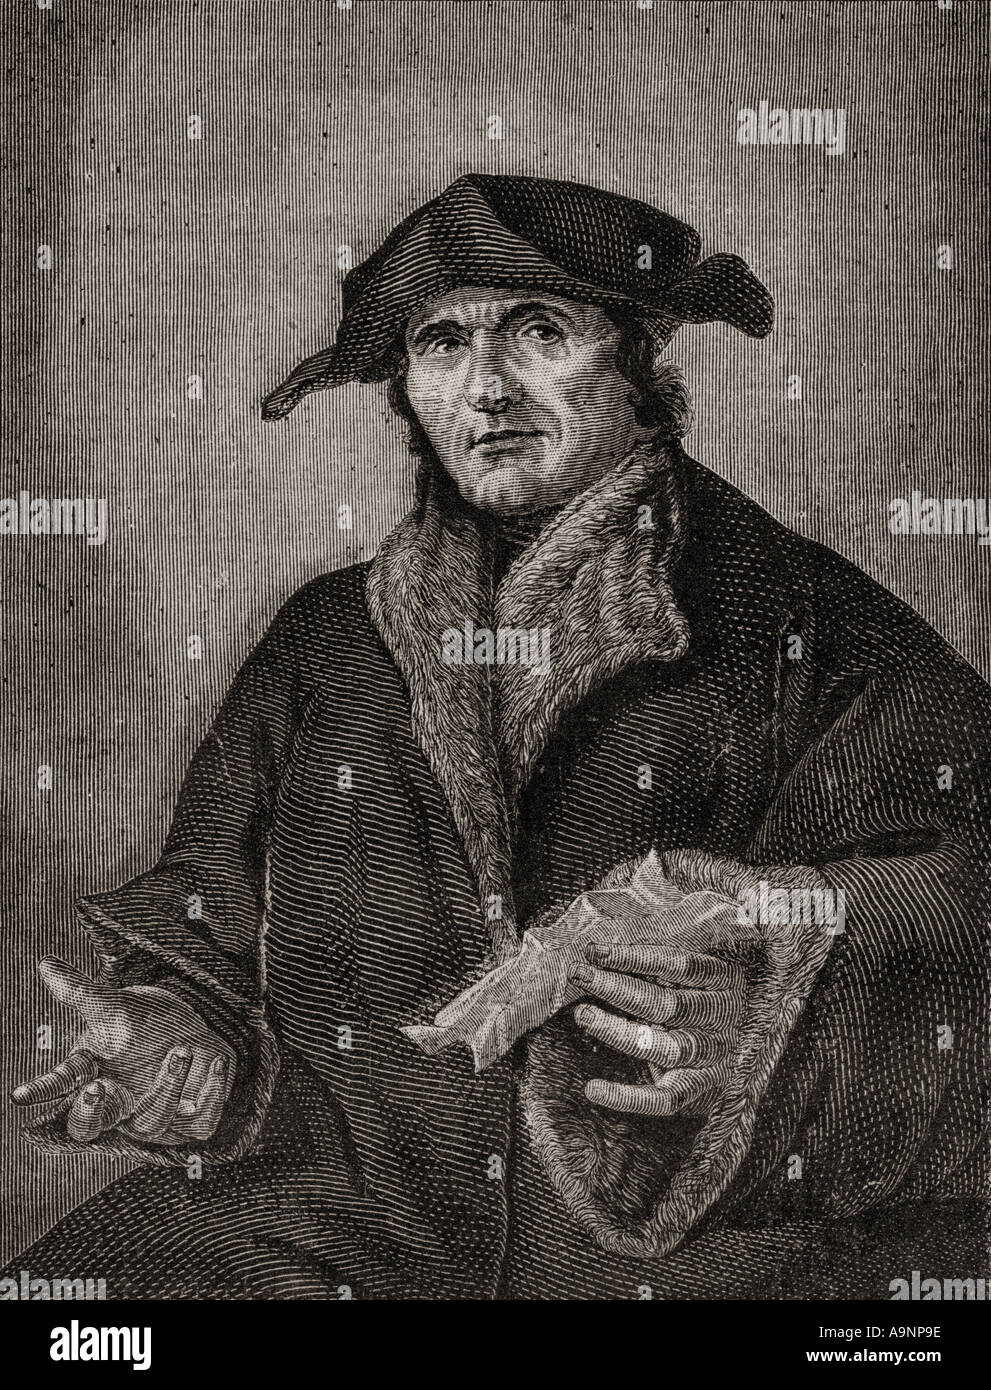 Jean Calvin, 1509 - 1564. French reformer, pastor and theologian.  From Histoire de la Revolution Francaise by Louis Blanc - Stock Image